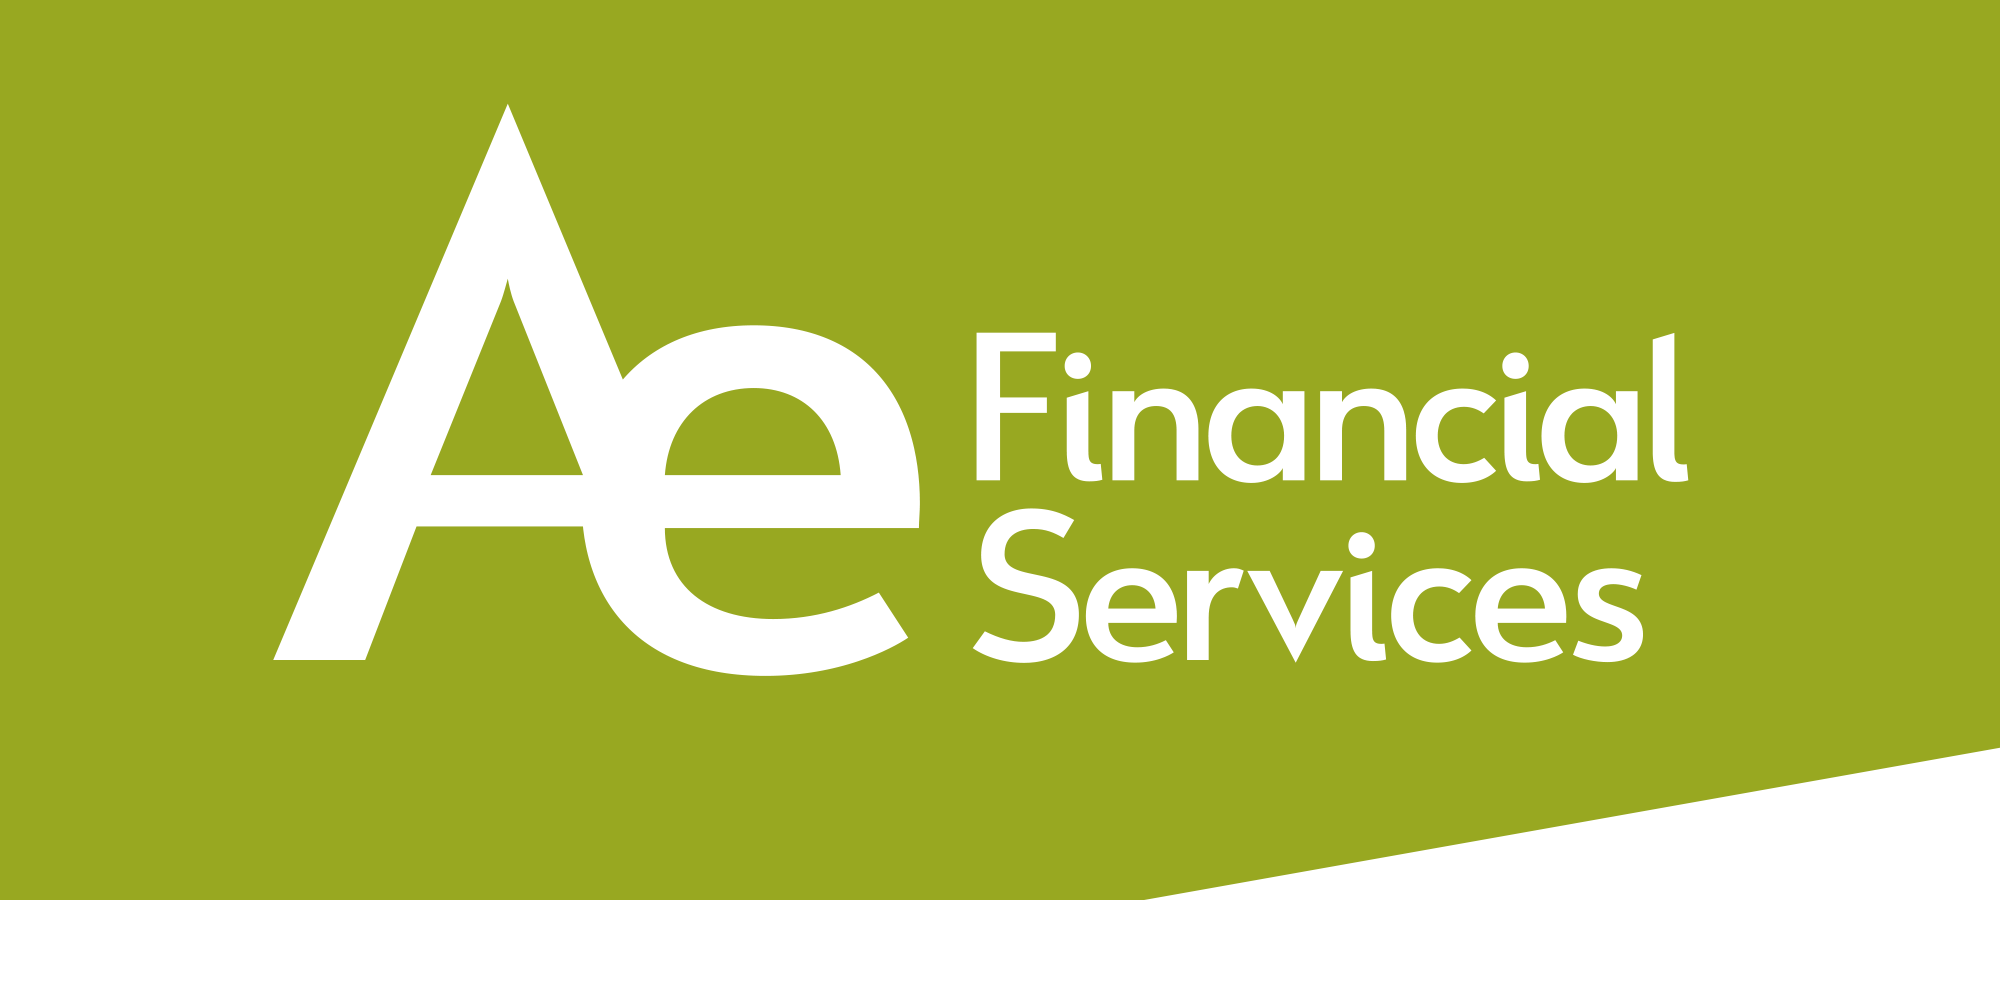 AE Financial Services